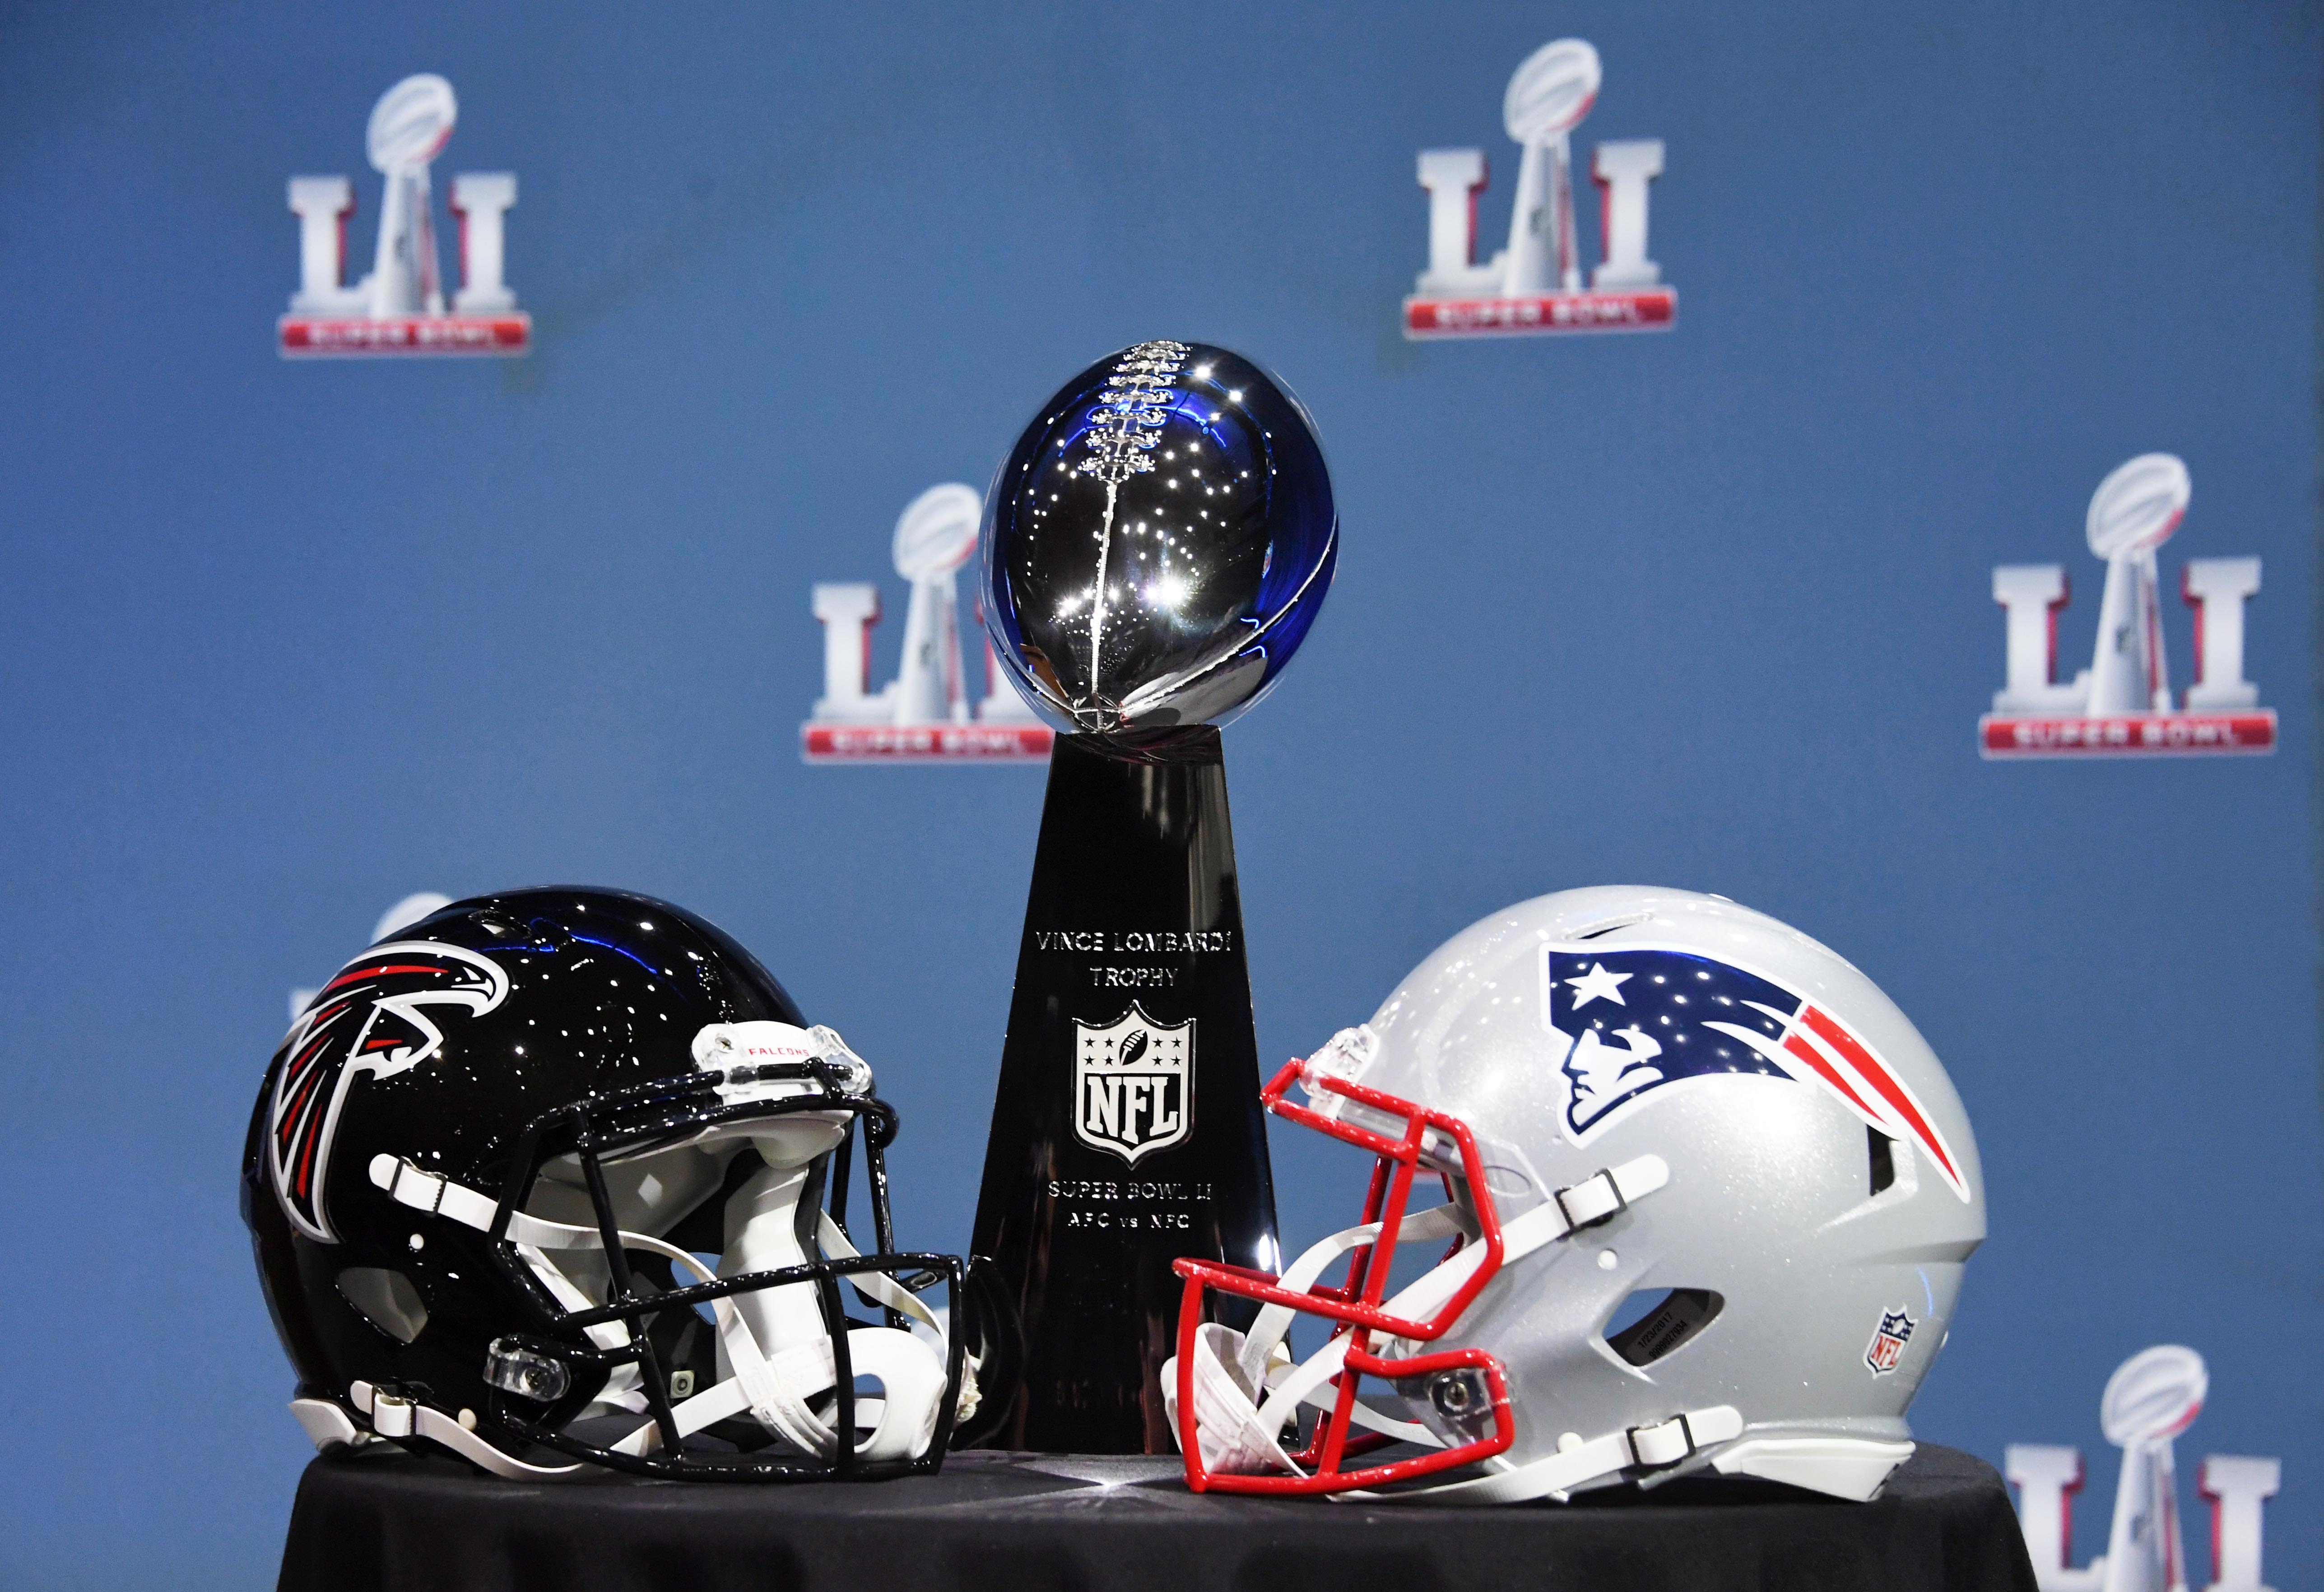 New England Patriots vs Atlanta Falcons